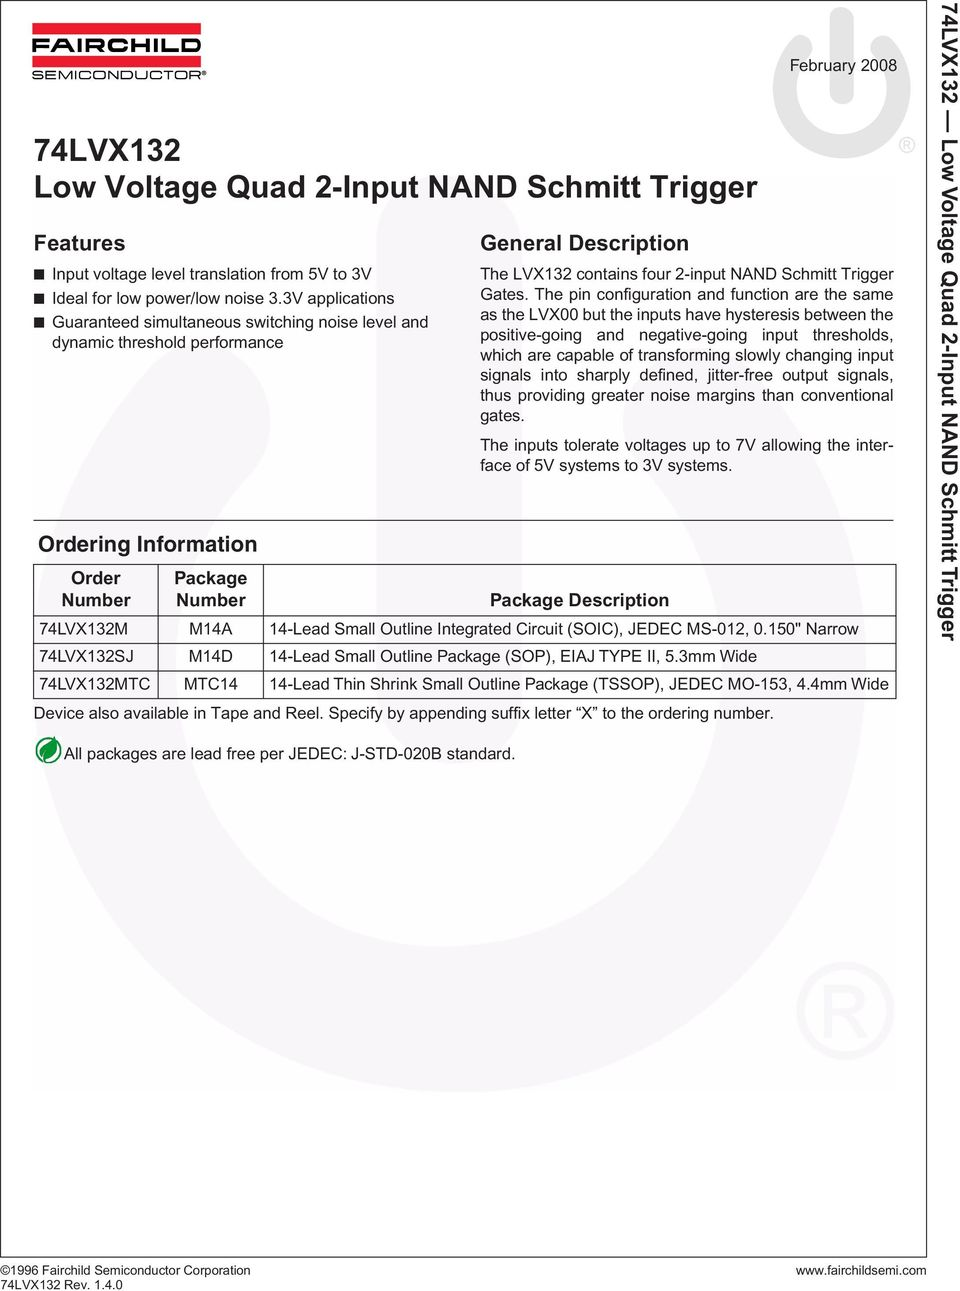 74lvx132 Low Voltage Quad 2 Input Nand Schmitt Trigger Pdf Small Outline Integrated Circuit Soic And Sop Four Gates